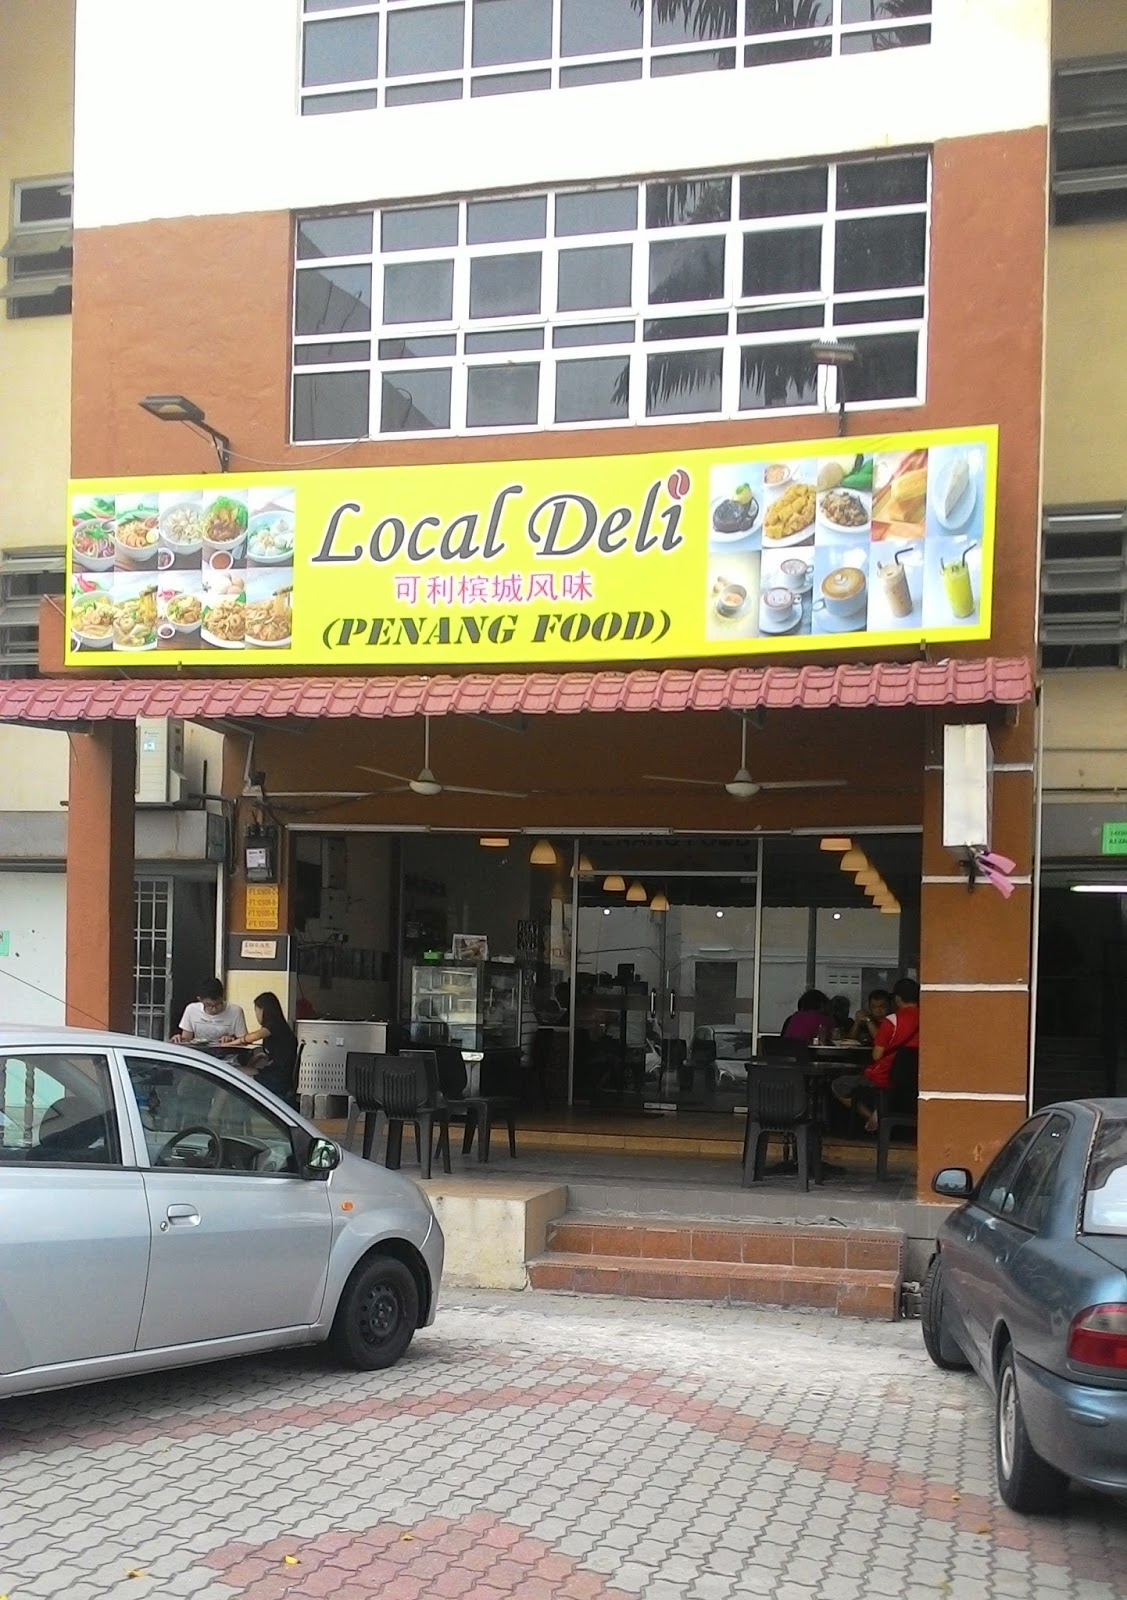 Painted Lips Local Deli Restaurant Nilai If You Love Penang Food You Gotta Come Here